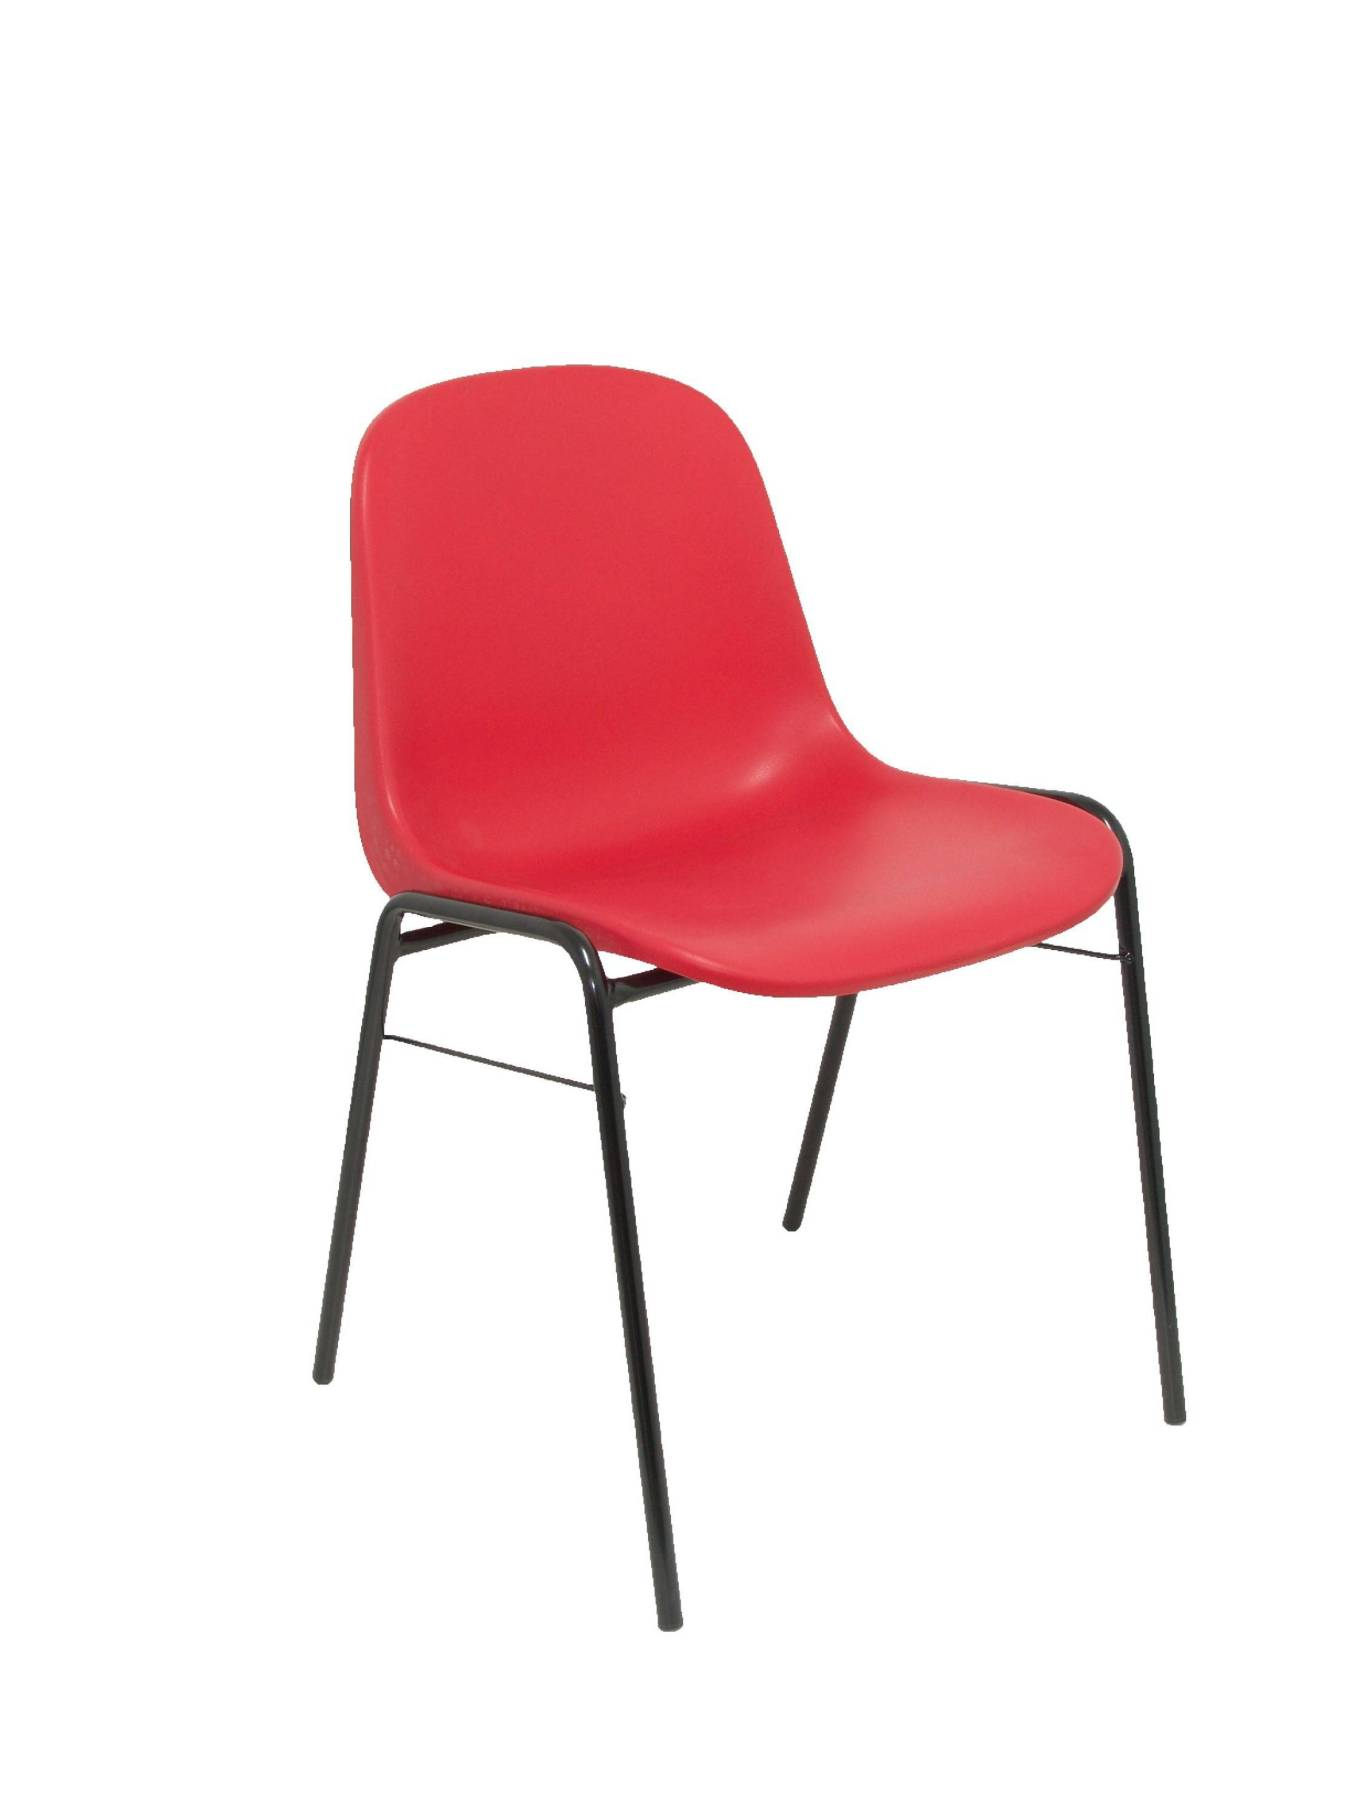 Visitor Chair Desk Ergonomic, Stackable And With Negro Up Seat And Backstop Structure PVC Red Color TAPHOLE AND CURLED